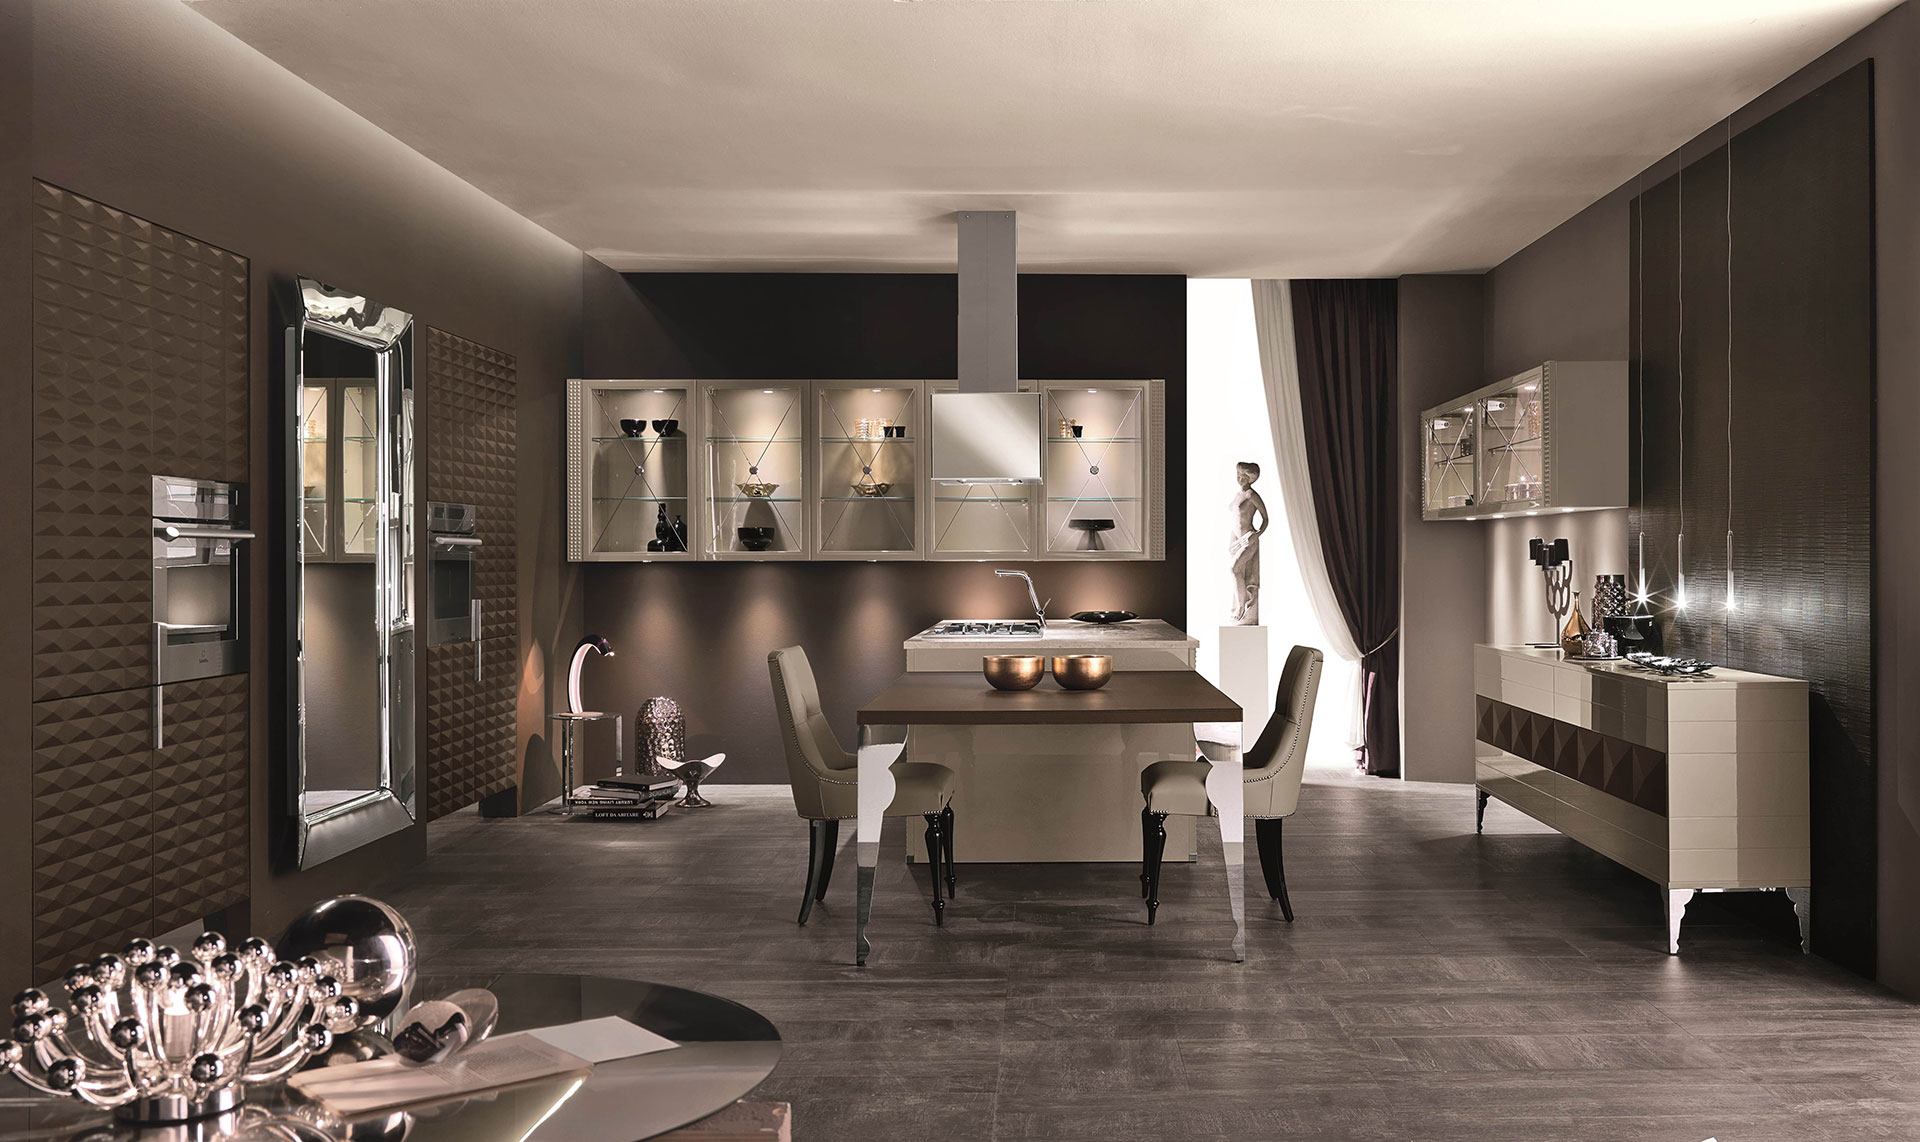 LUXURY by Aster Cucine